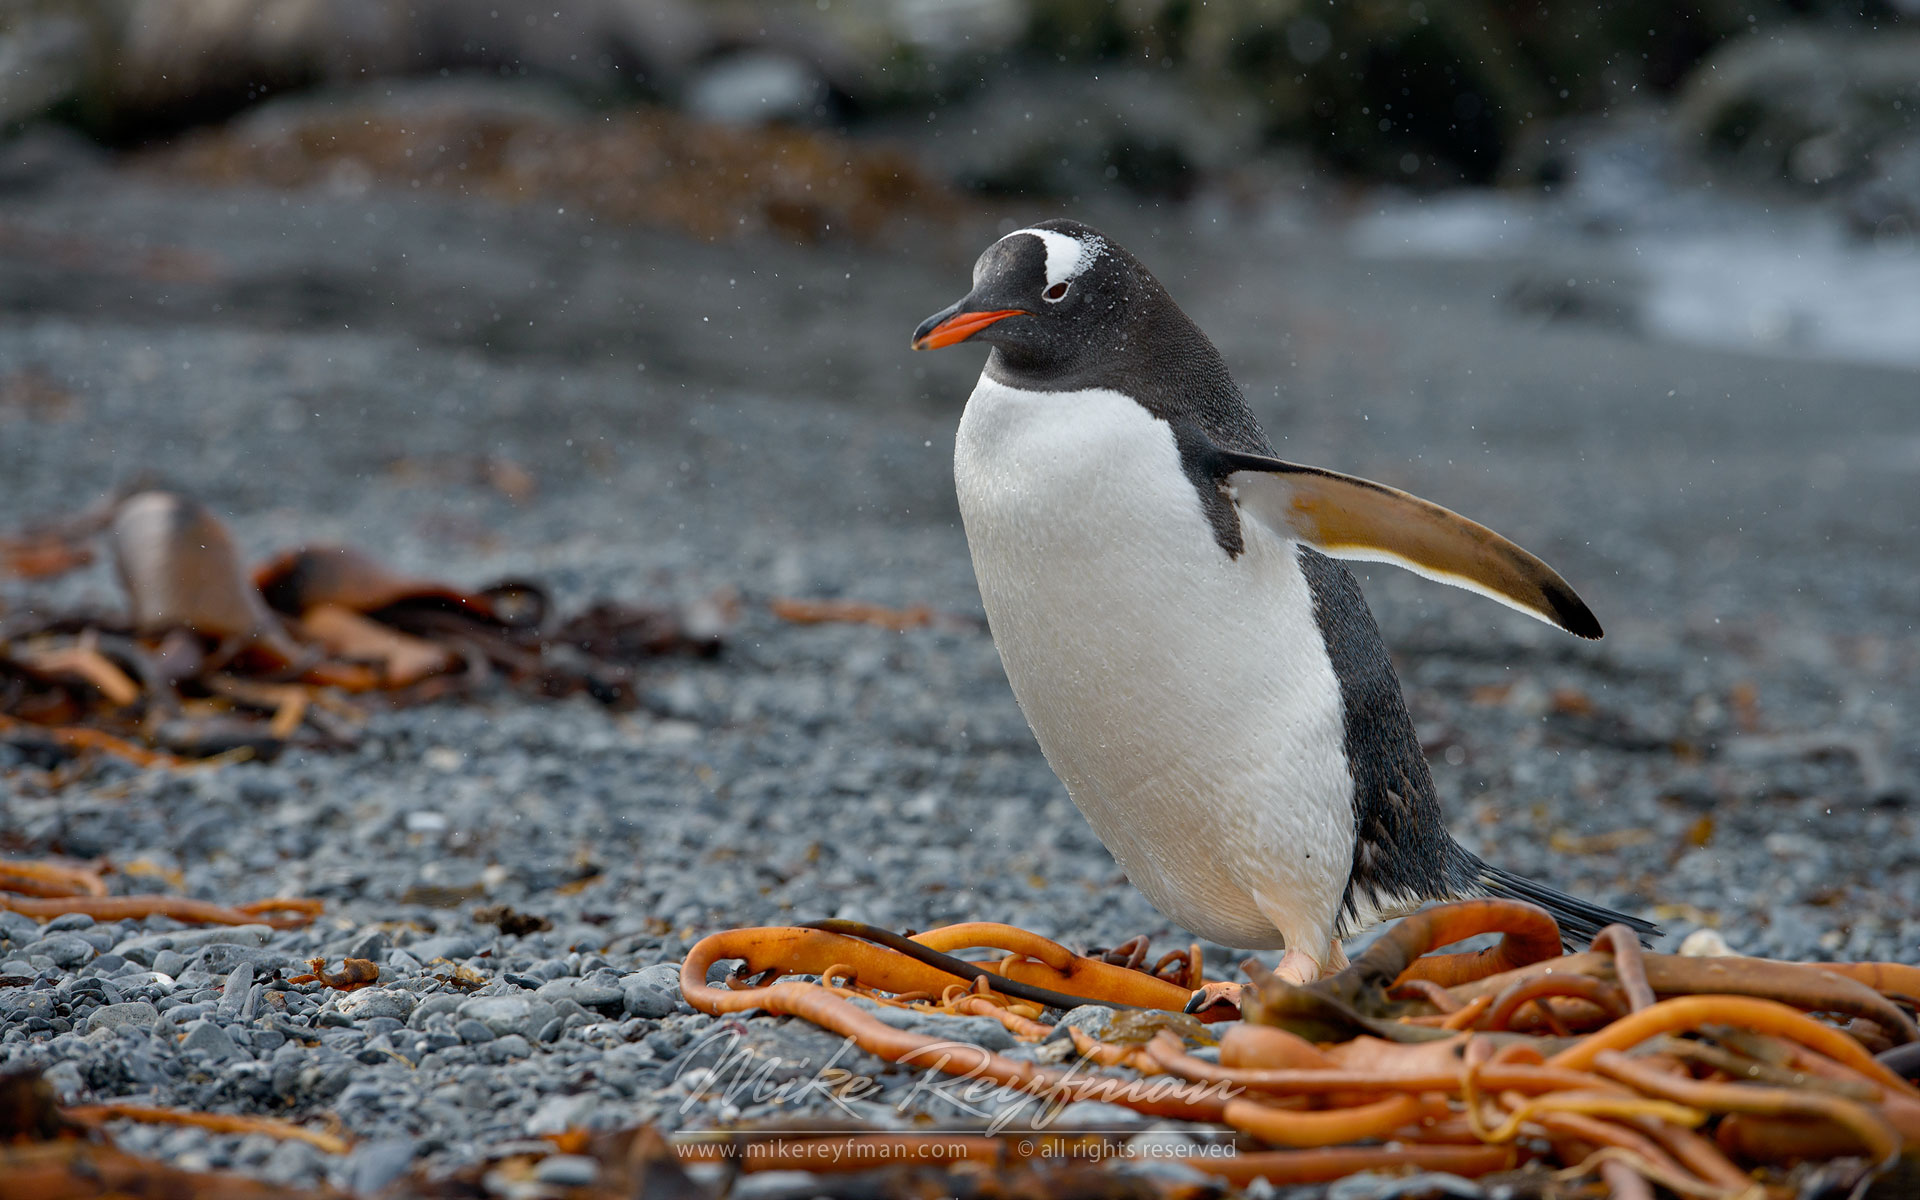 Gentoo Penguin (Pygoscelis papua). Prion Island, South Georgia, Sub-Antarctic - King-Penguins-South-Georgia-Sub-Antarctic - Mike Reyfman Photography